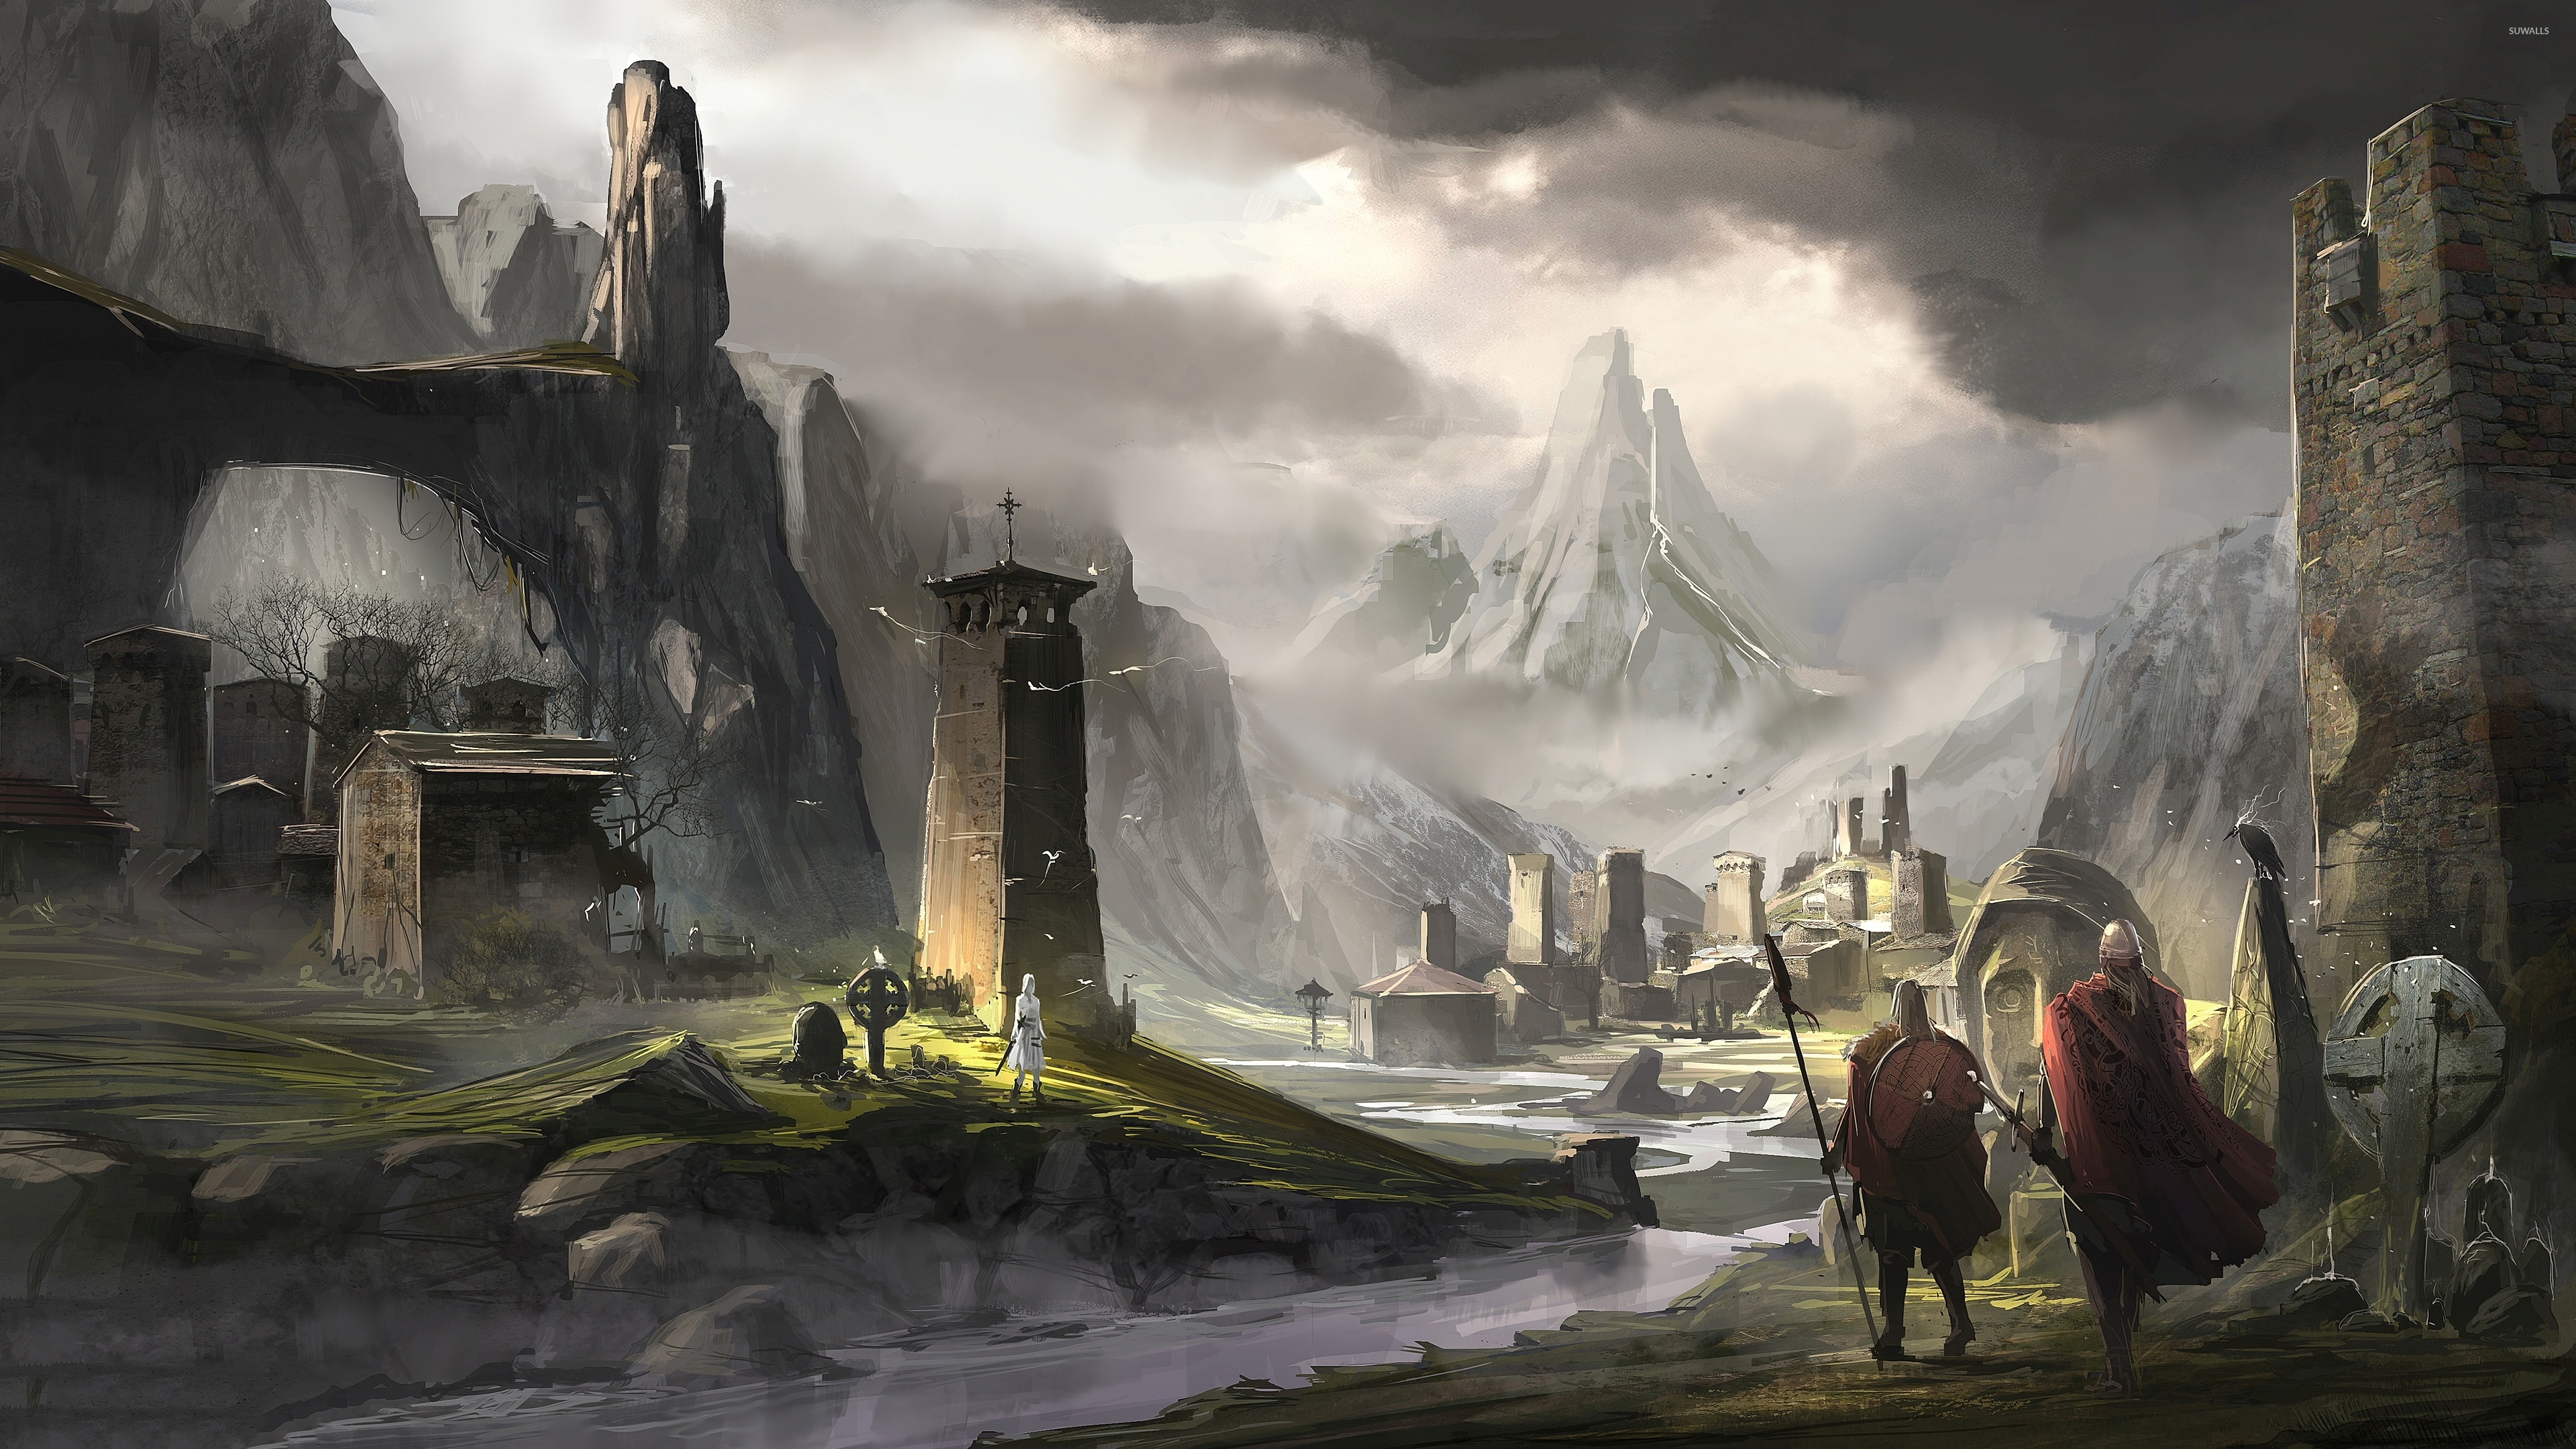 viking town in the rocky mountains wallpaper digital art